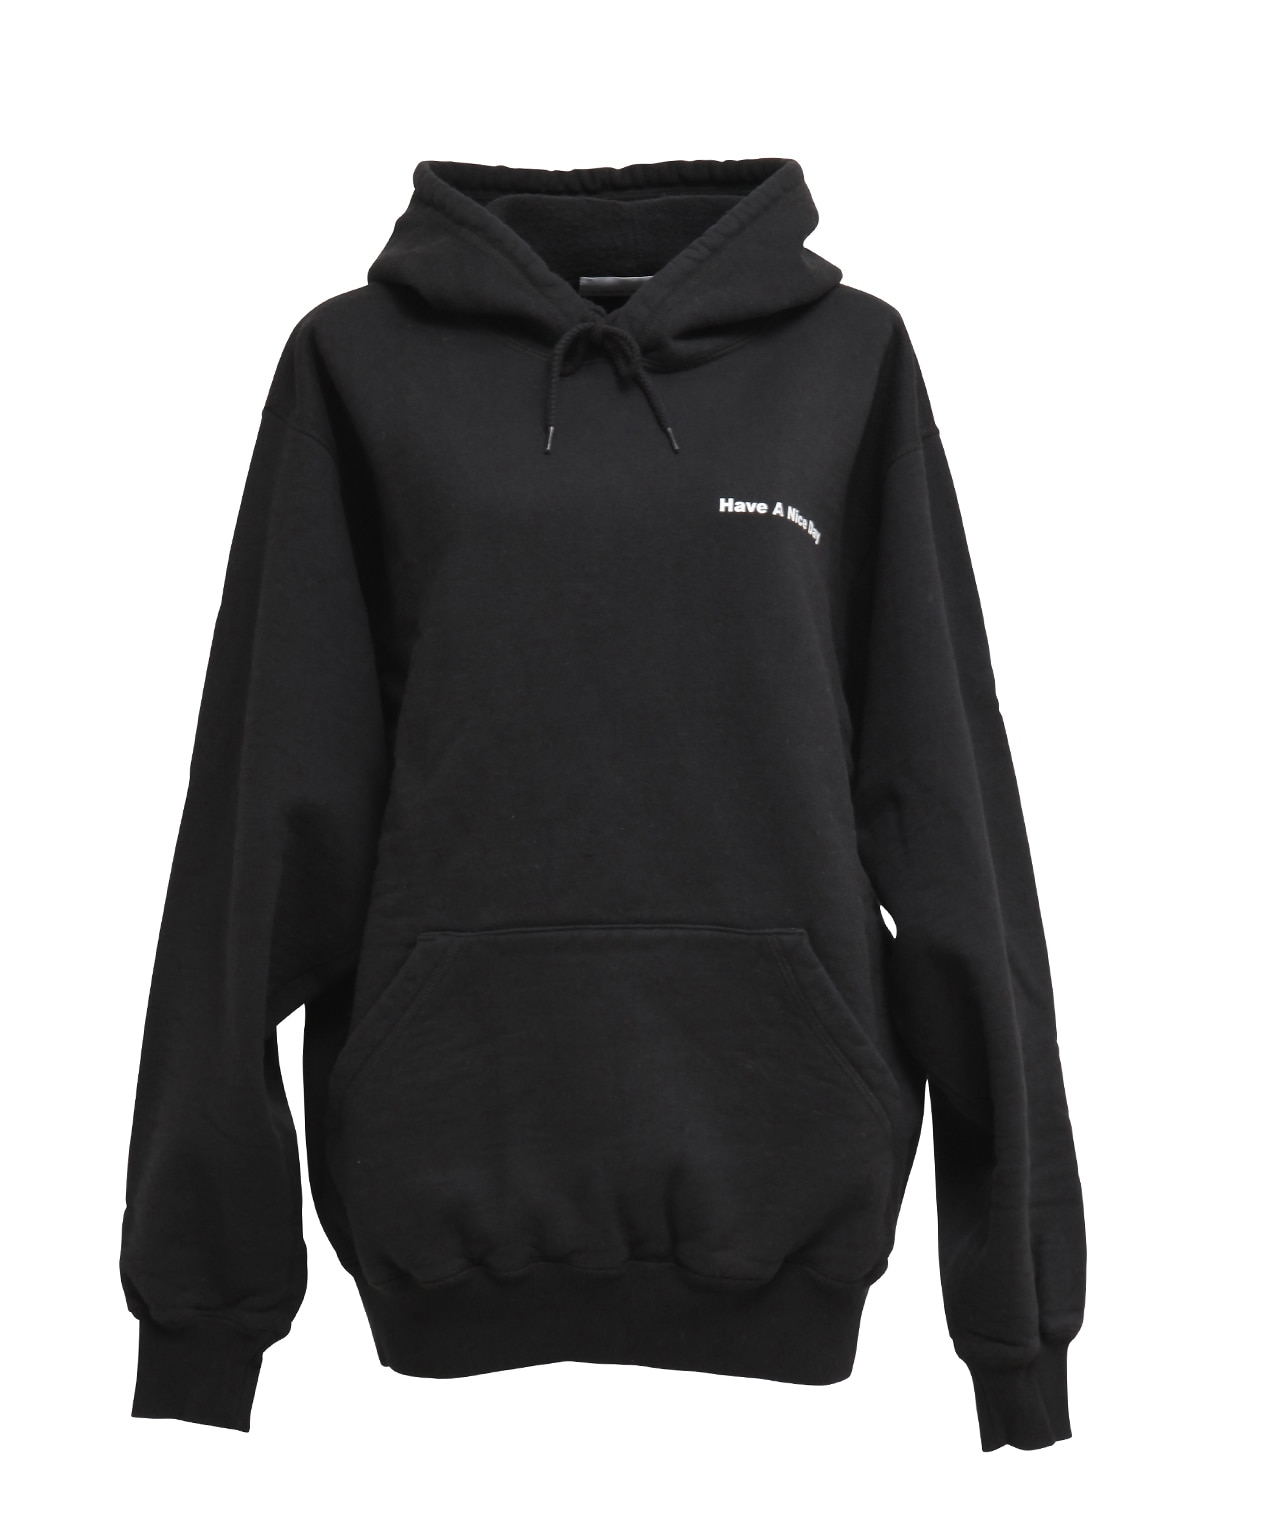 CANAL NEW YORK/THANK YOU HOODIE